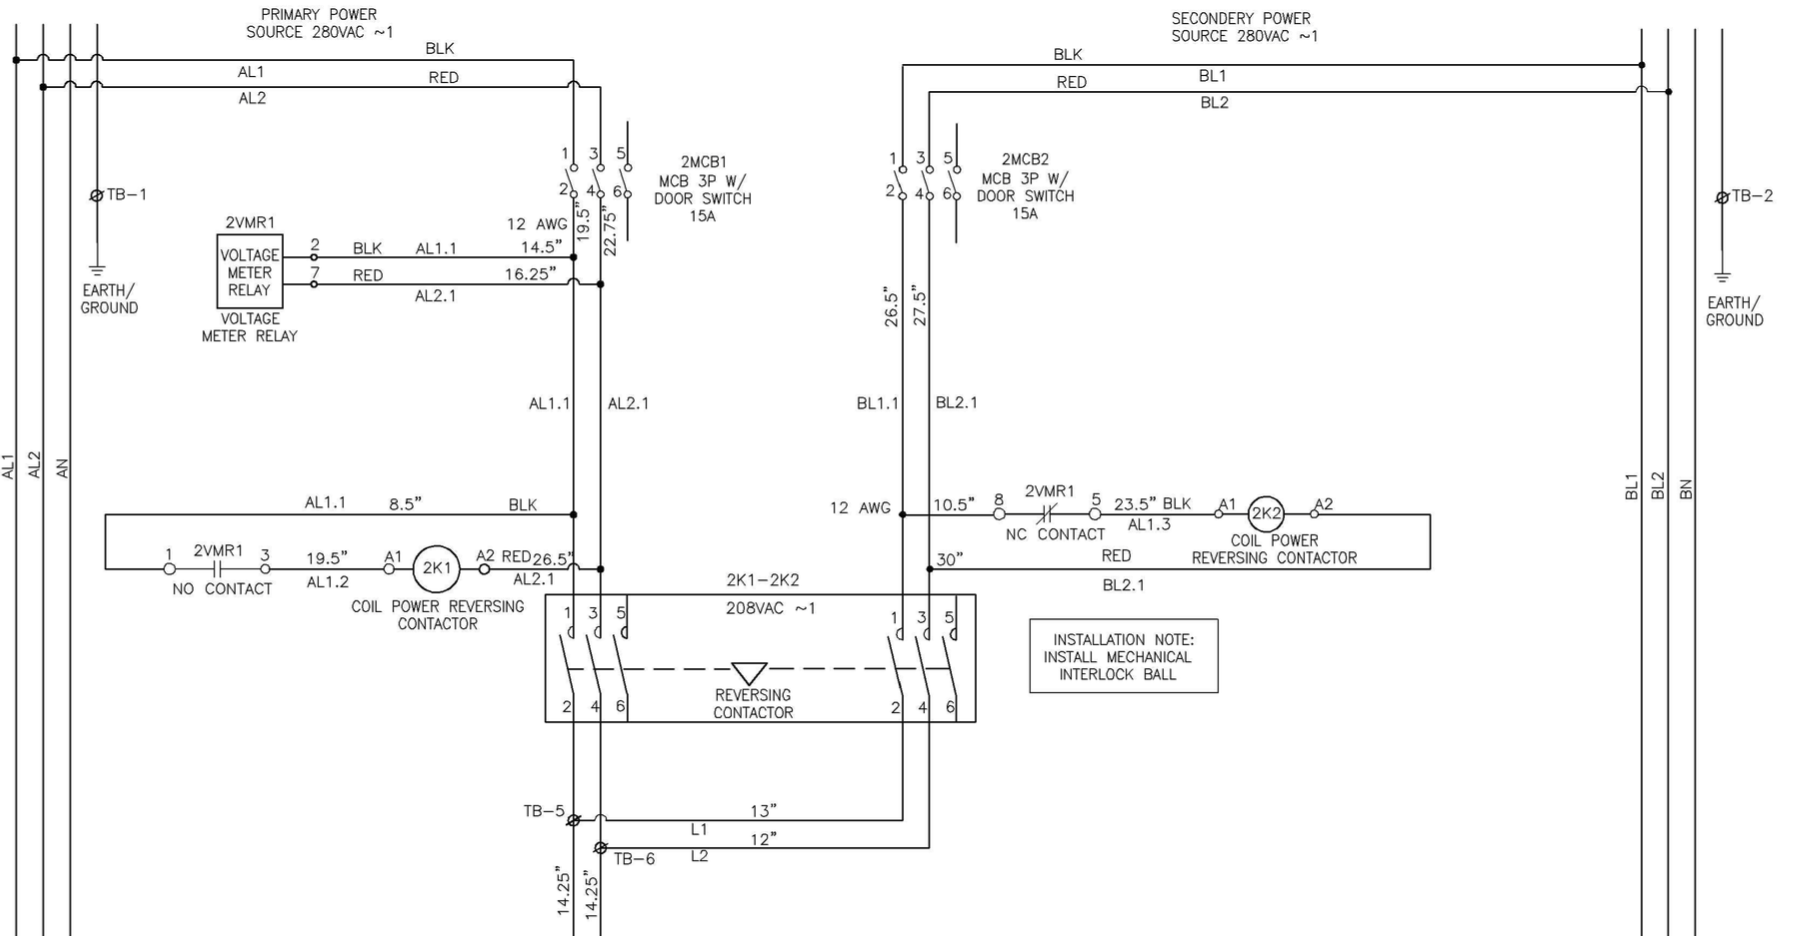 automatic transfer switch wiring diagram whirlpool duet dryer belt power vs using a reversing